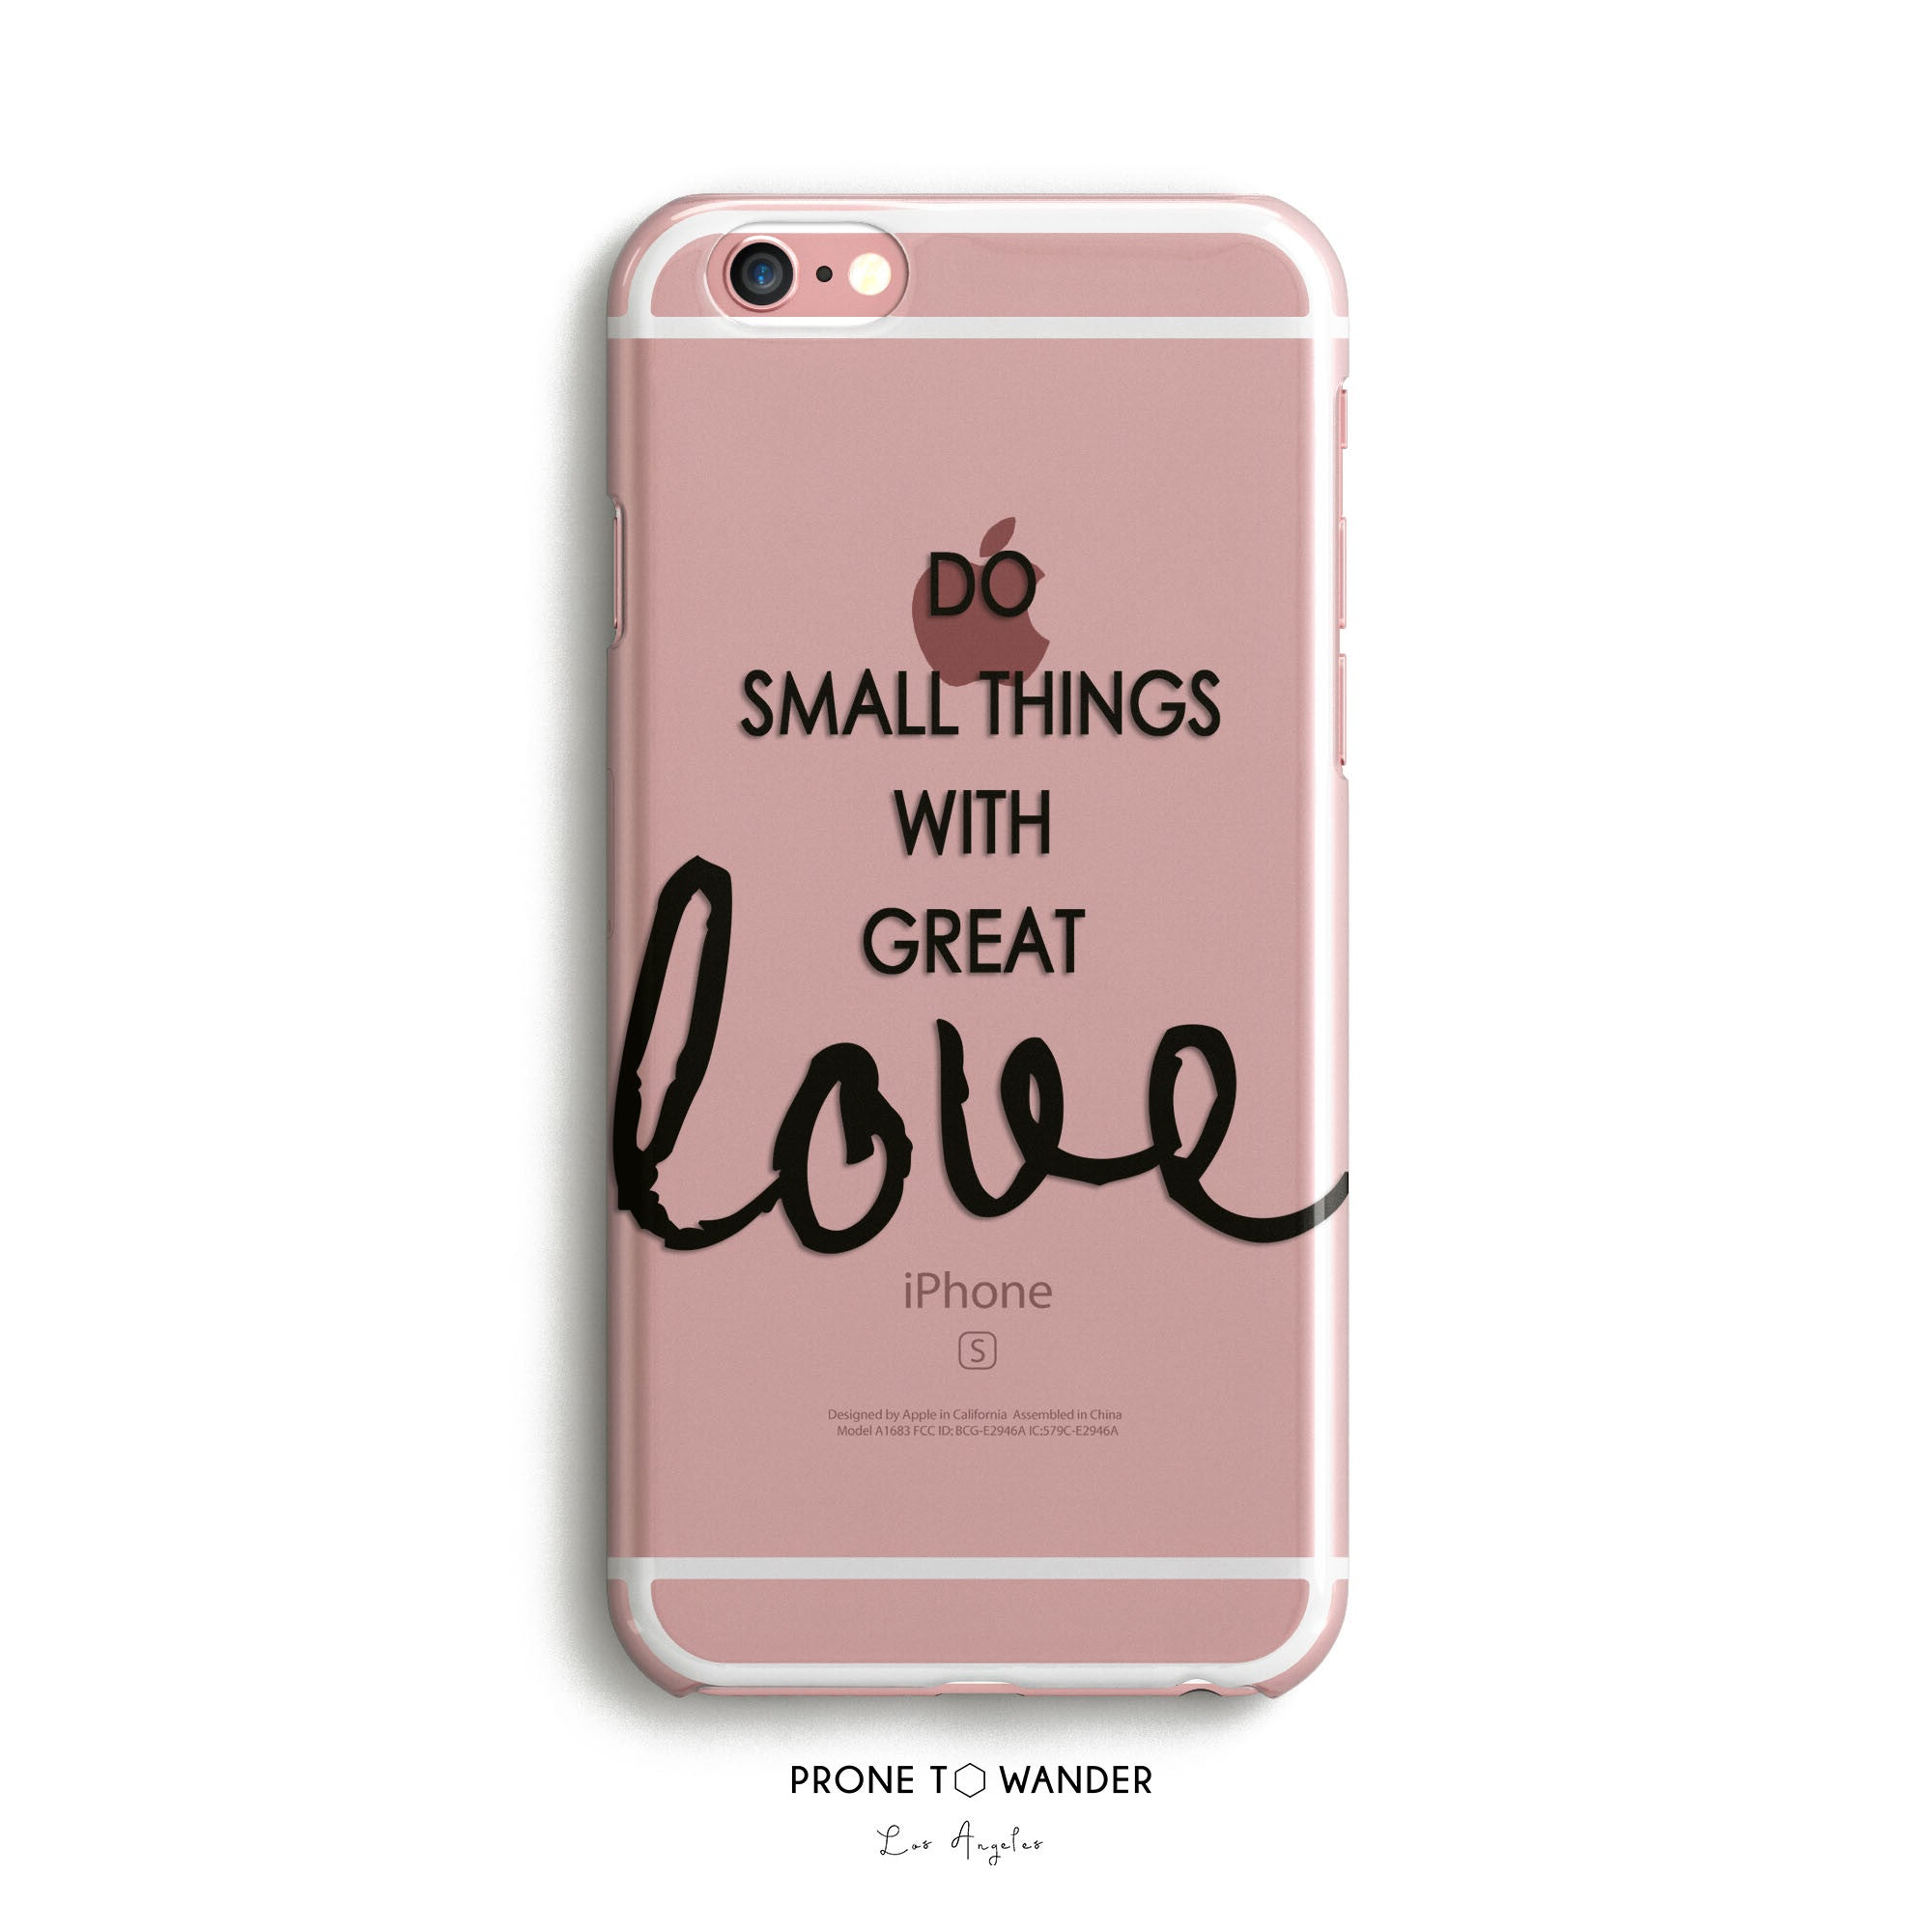 H43 - DO SMALL THINGS GREAT LOVE - Mother Theresa Motivational Quote Inspirational Sayings Phone Cover